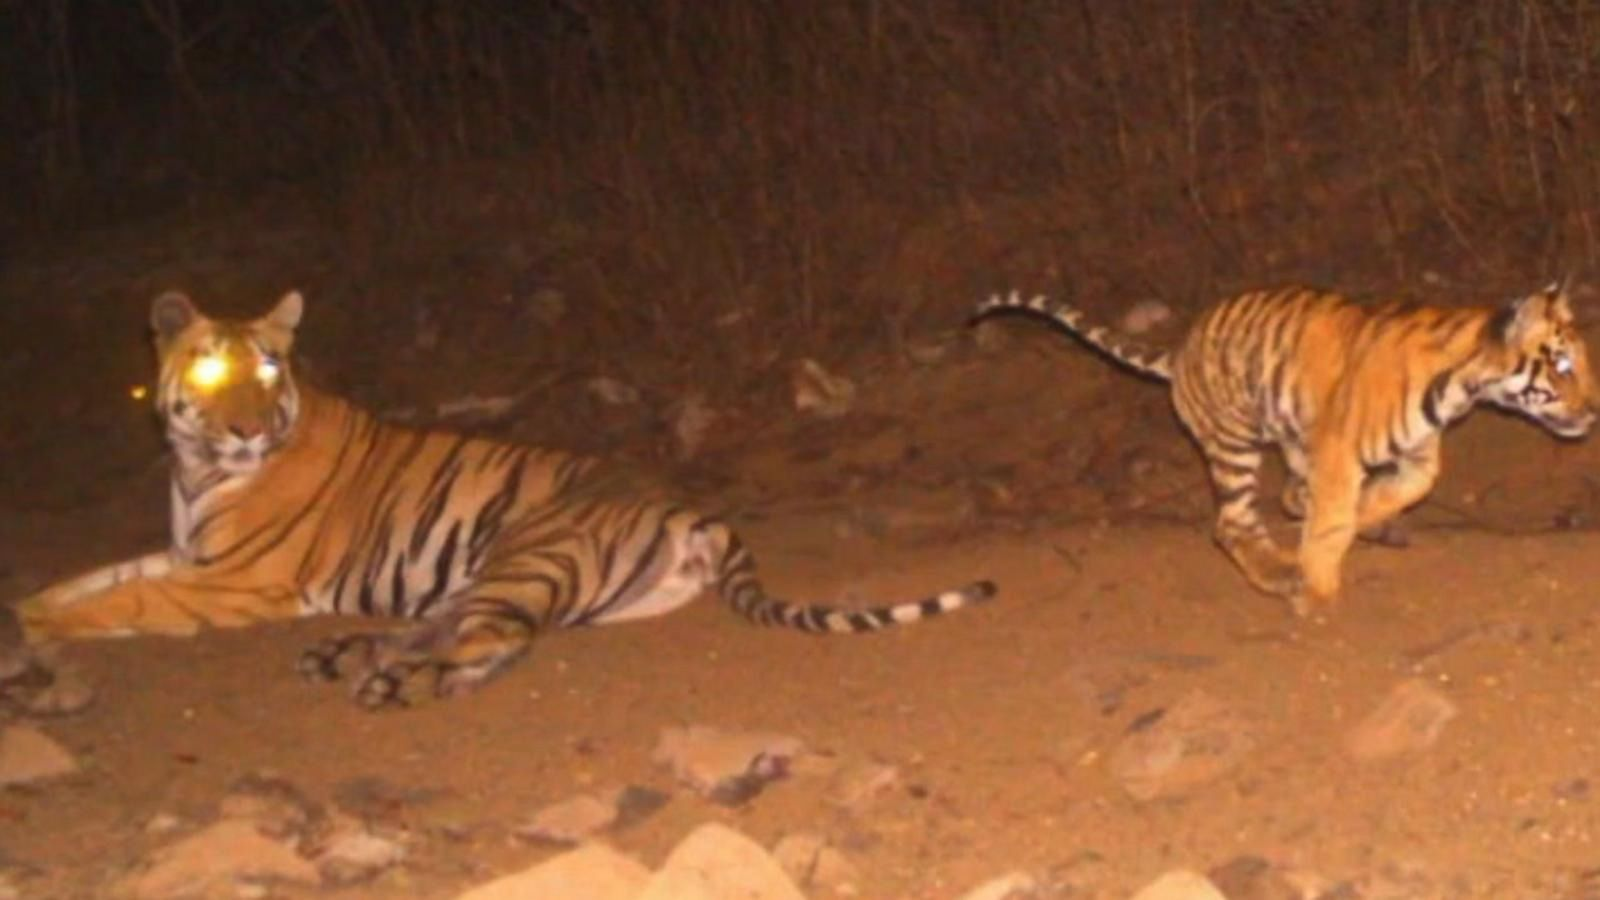 man eating tiger s killing in india leads to criticism from